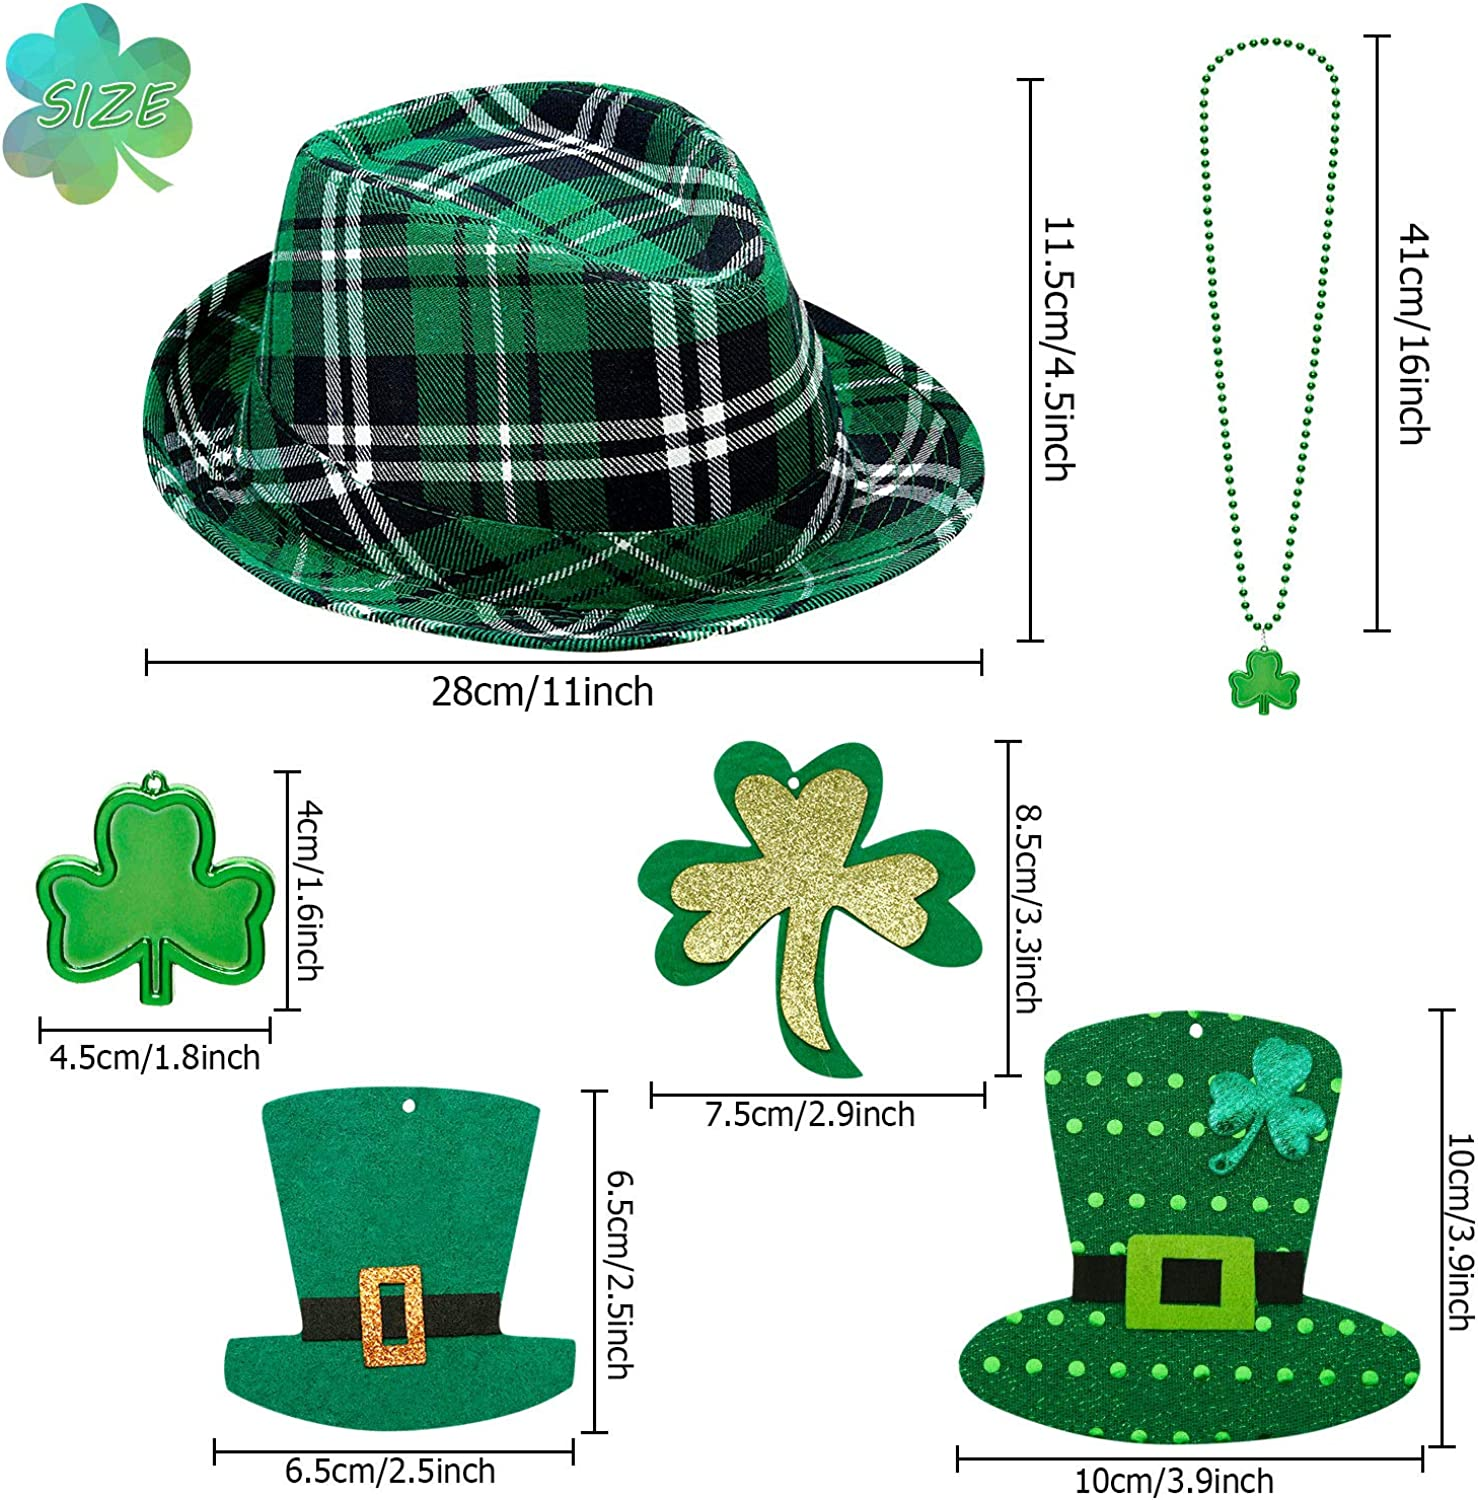 2 Pieces St Patricks Day Shamrock Necklace Green Bead Clover Necklace for Party Costume Accessory Patricks Day Hat Green Plaid Hat Irish Fabric Hat with 8 Pieces St